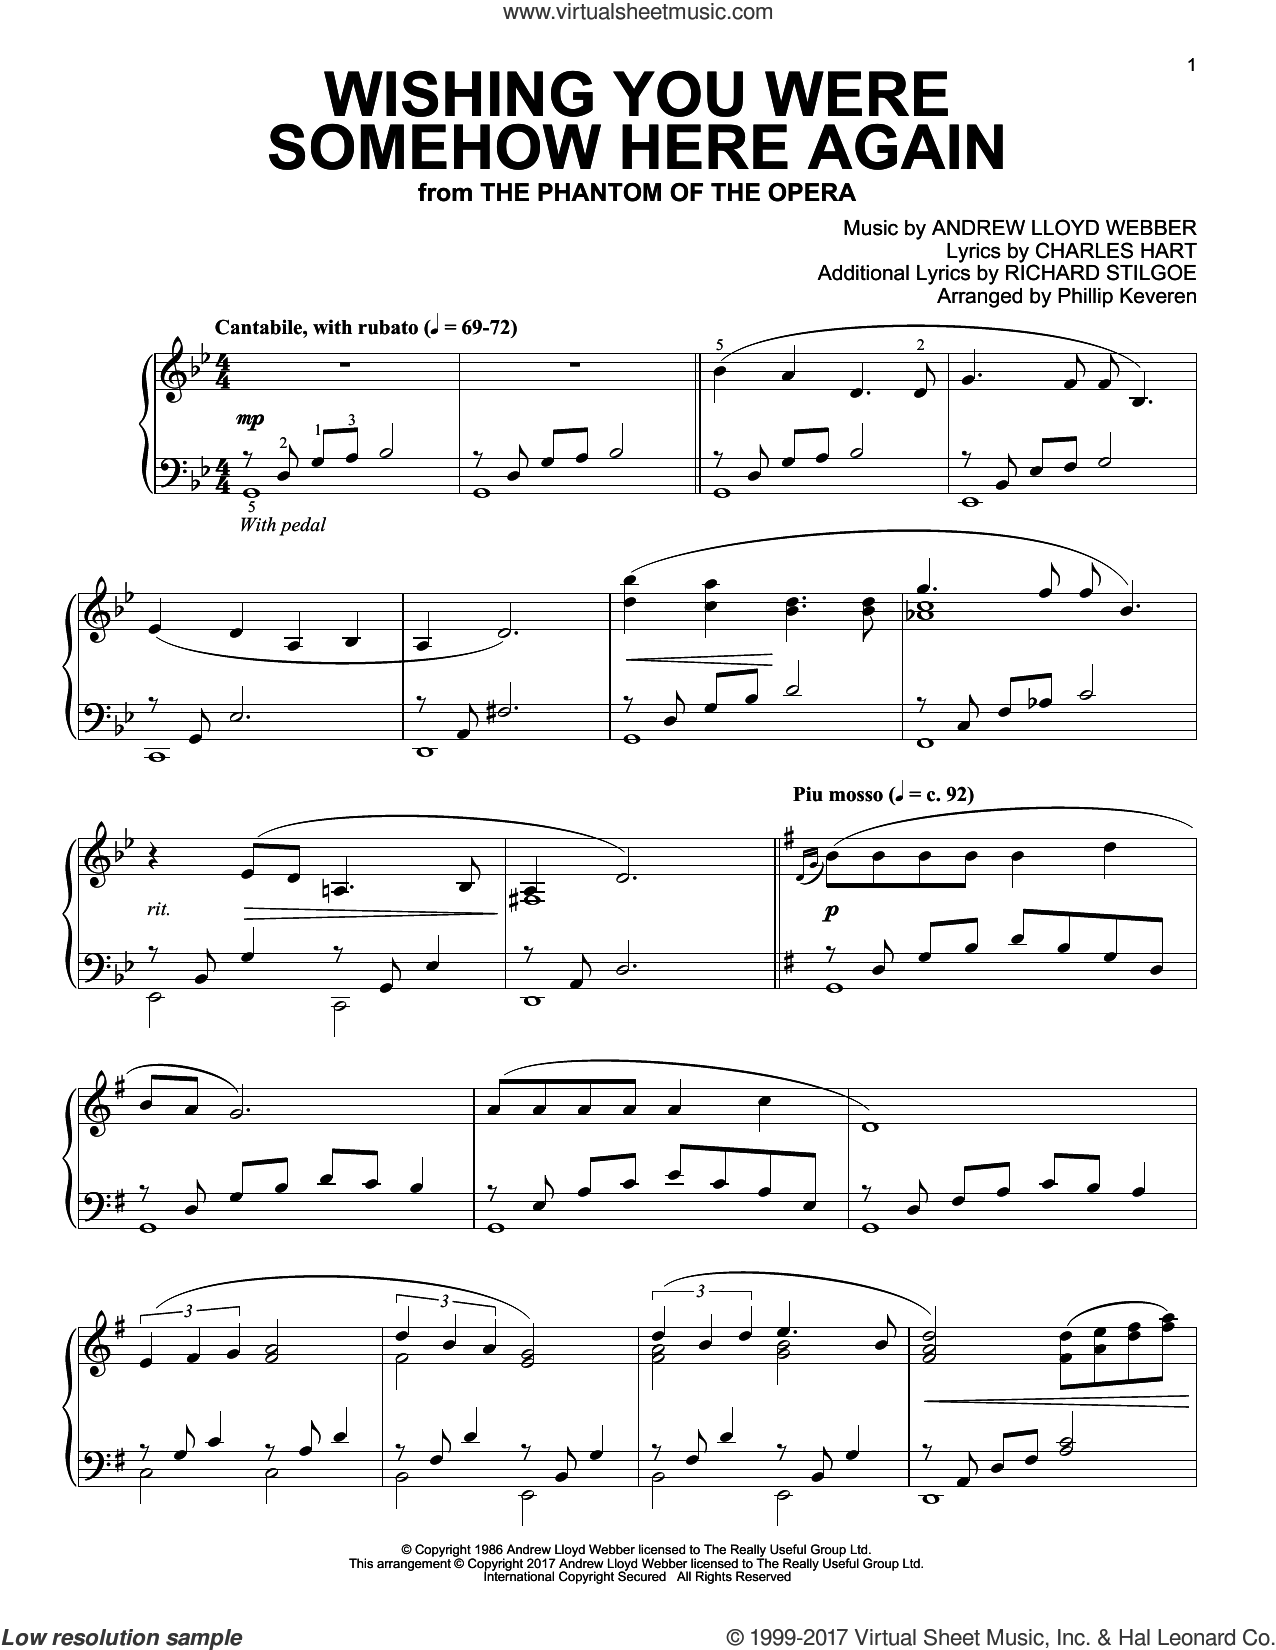 Wishing You Were Somehow Here Again sheet music for piano solo by Andrew Lloyd Webber, Phillip Keveren, Charles Hart and Richard Stilgoe, intermediate skill level